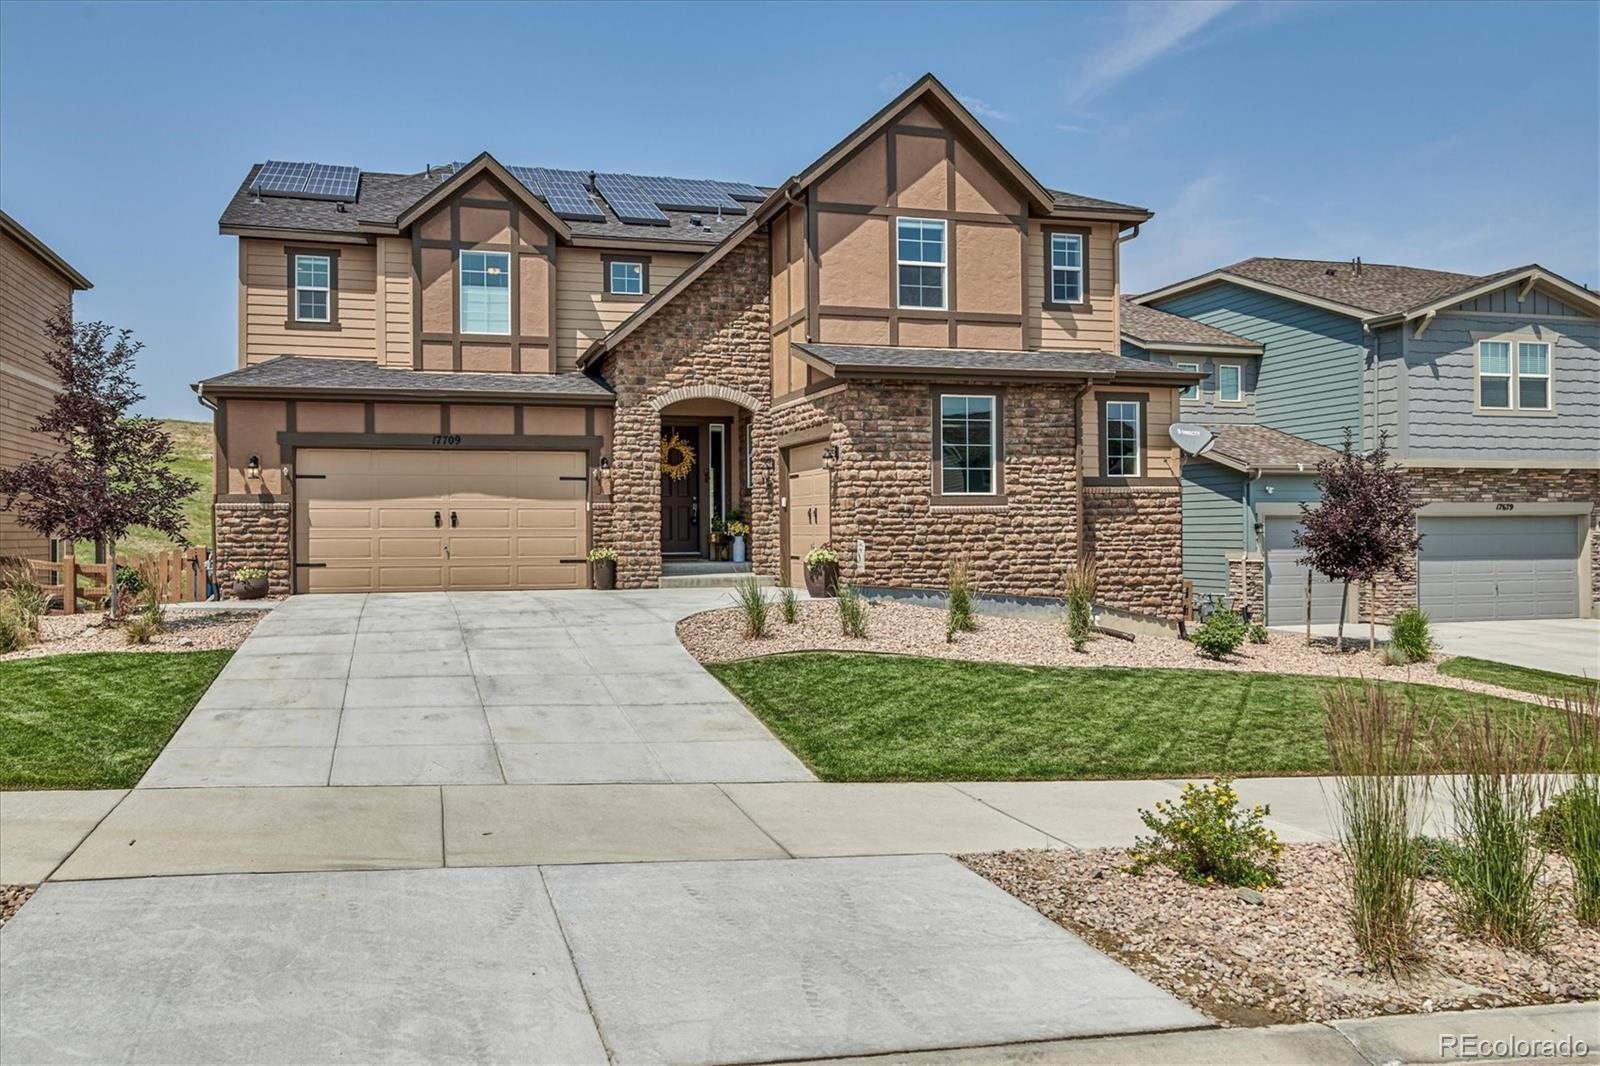 17709 W 95th Place, Arvada, CO 80007 - #: 4882965